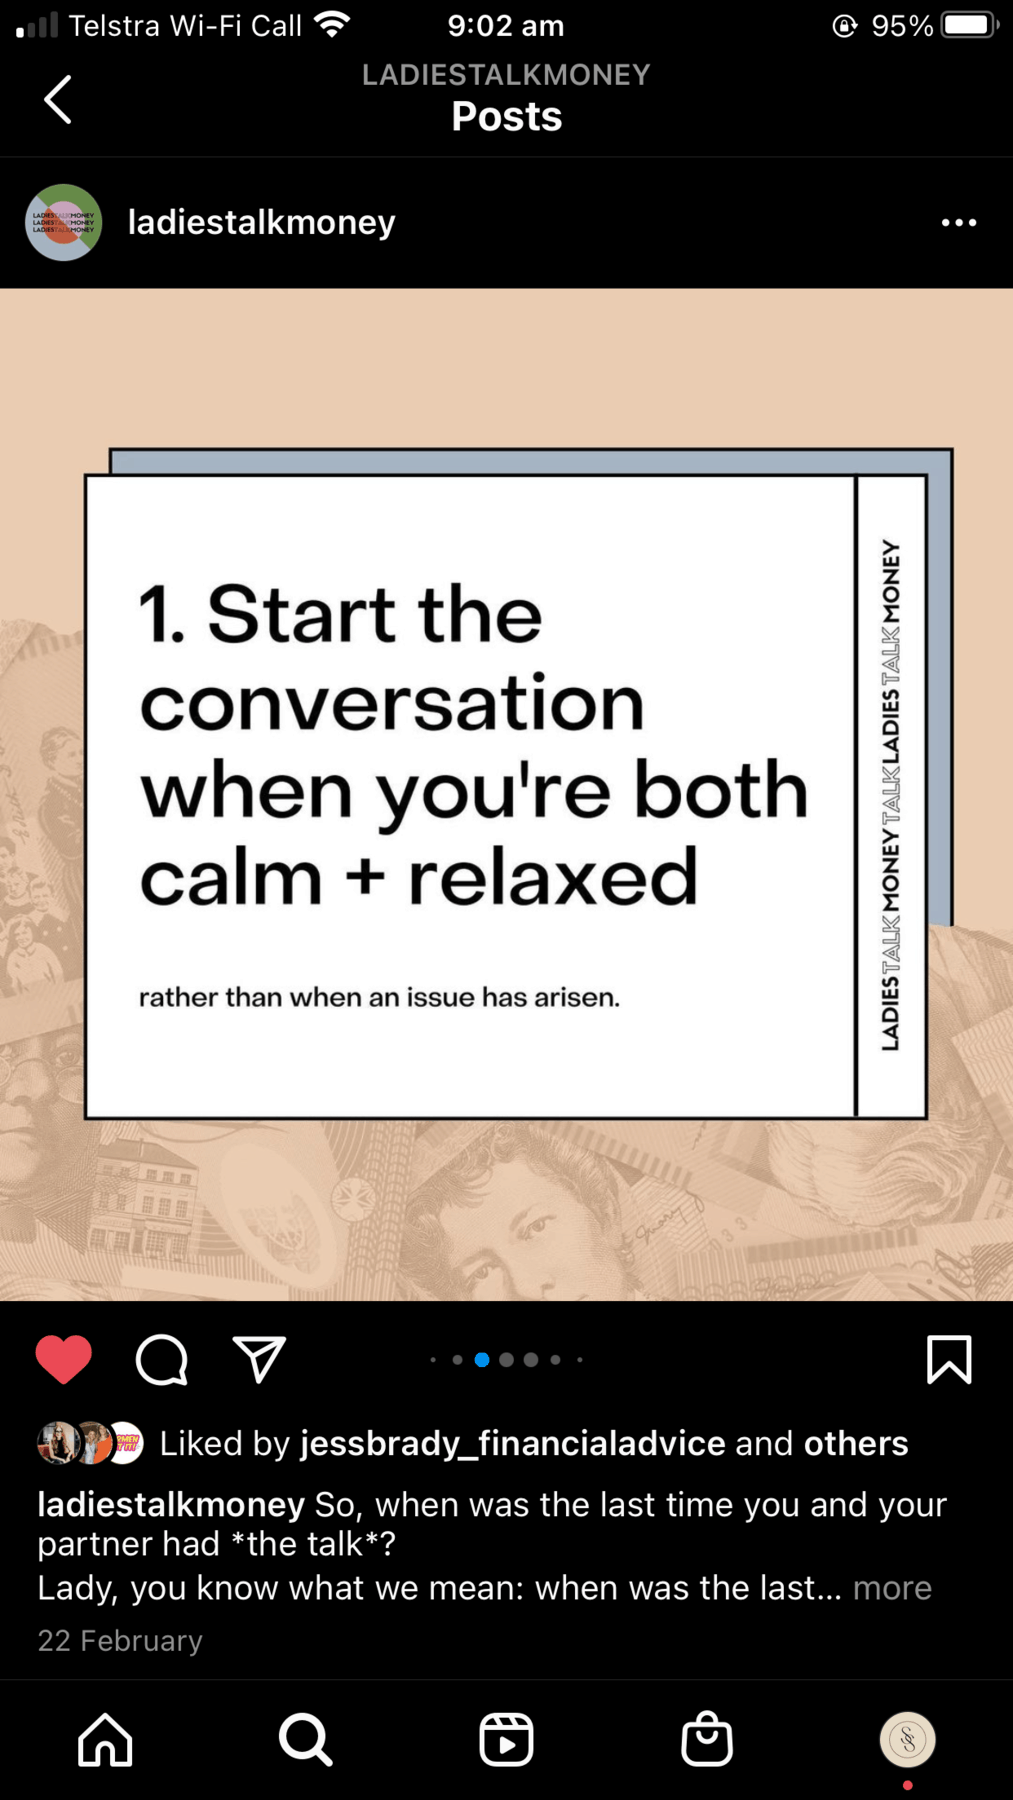 Ladies Talk About money slide 2 advice: start the conversation when you're both relaxed and calm